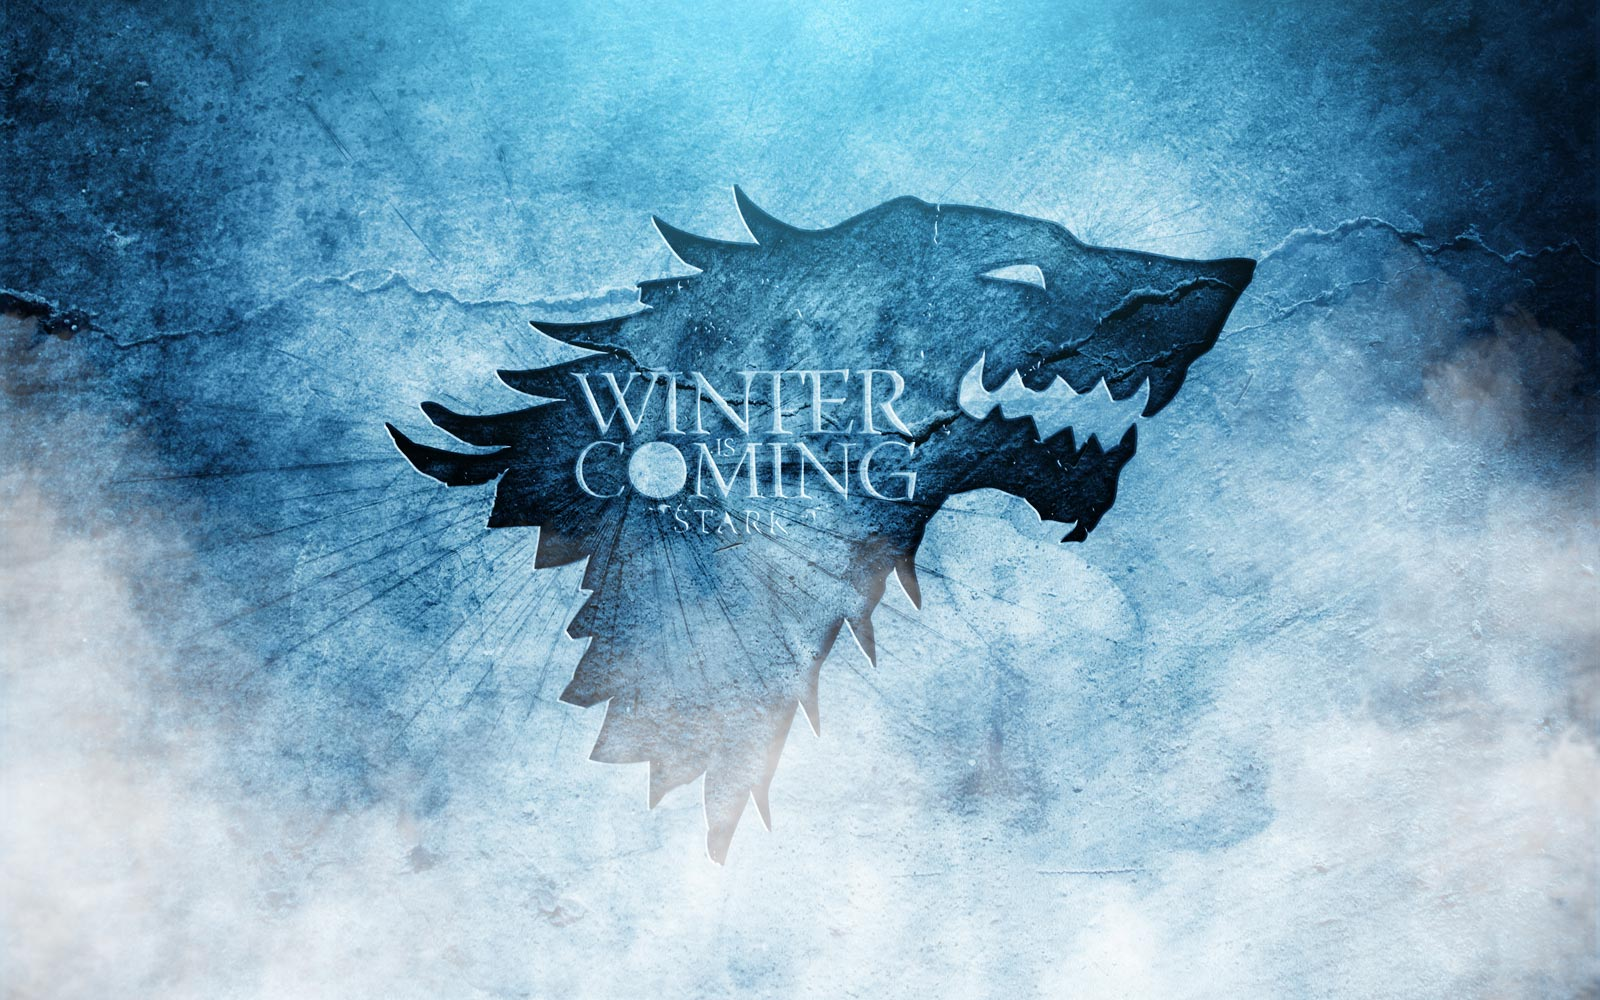 http://fc03.deviantart.net/fs70/f/2012/147/a/e/game_of_thrones__house_stark_by_ricreations-d5191zw.jpg